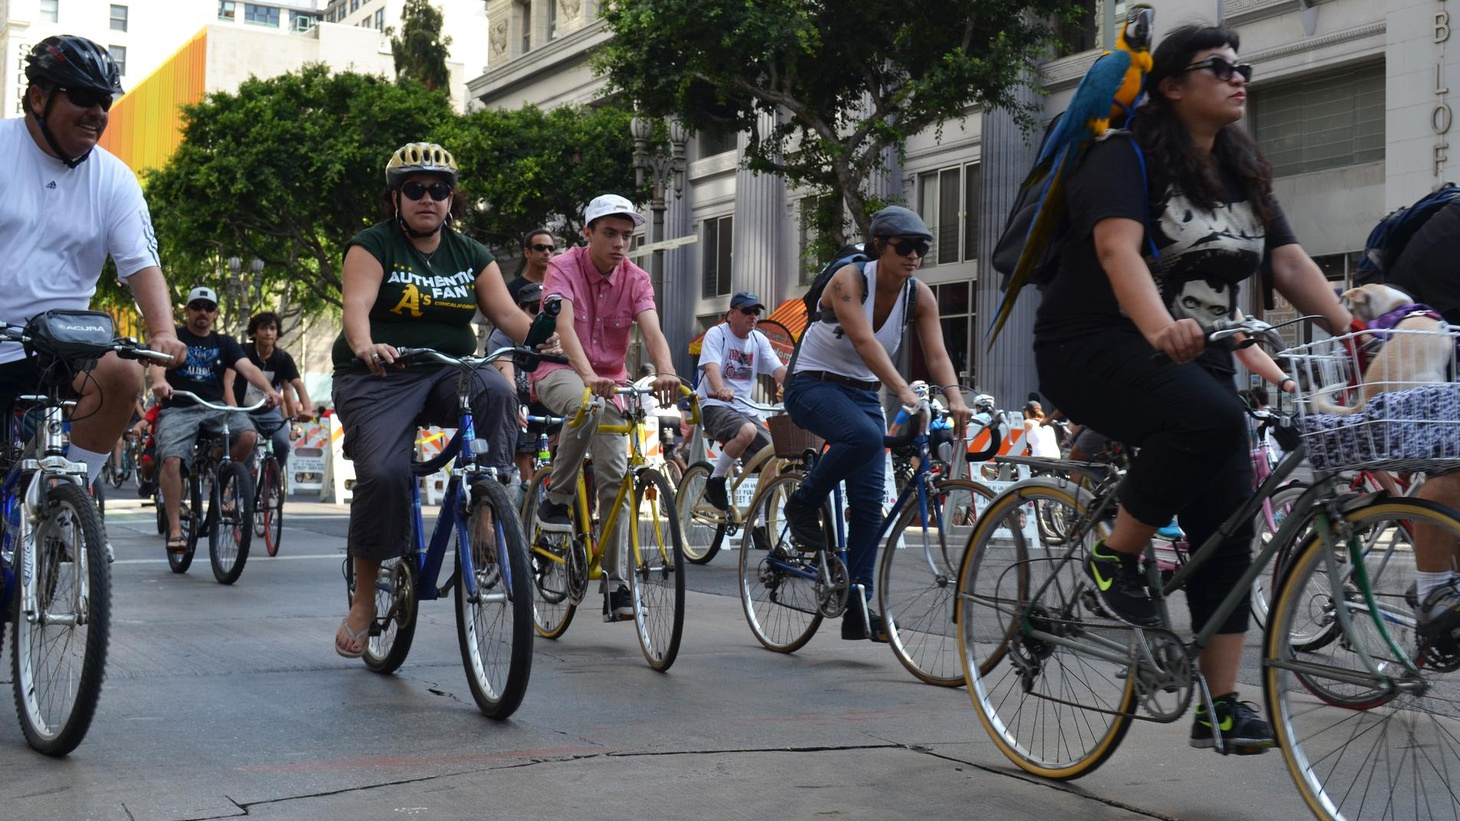 On Sunday, Venice Boulevard Westbound will car-free from downtown LA to Venice Beach. CicLAvia is designed to encourage commuting by bike in the car capital of the world.